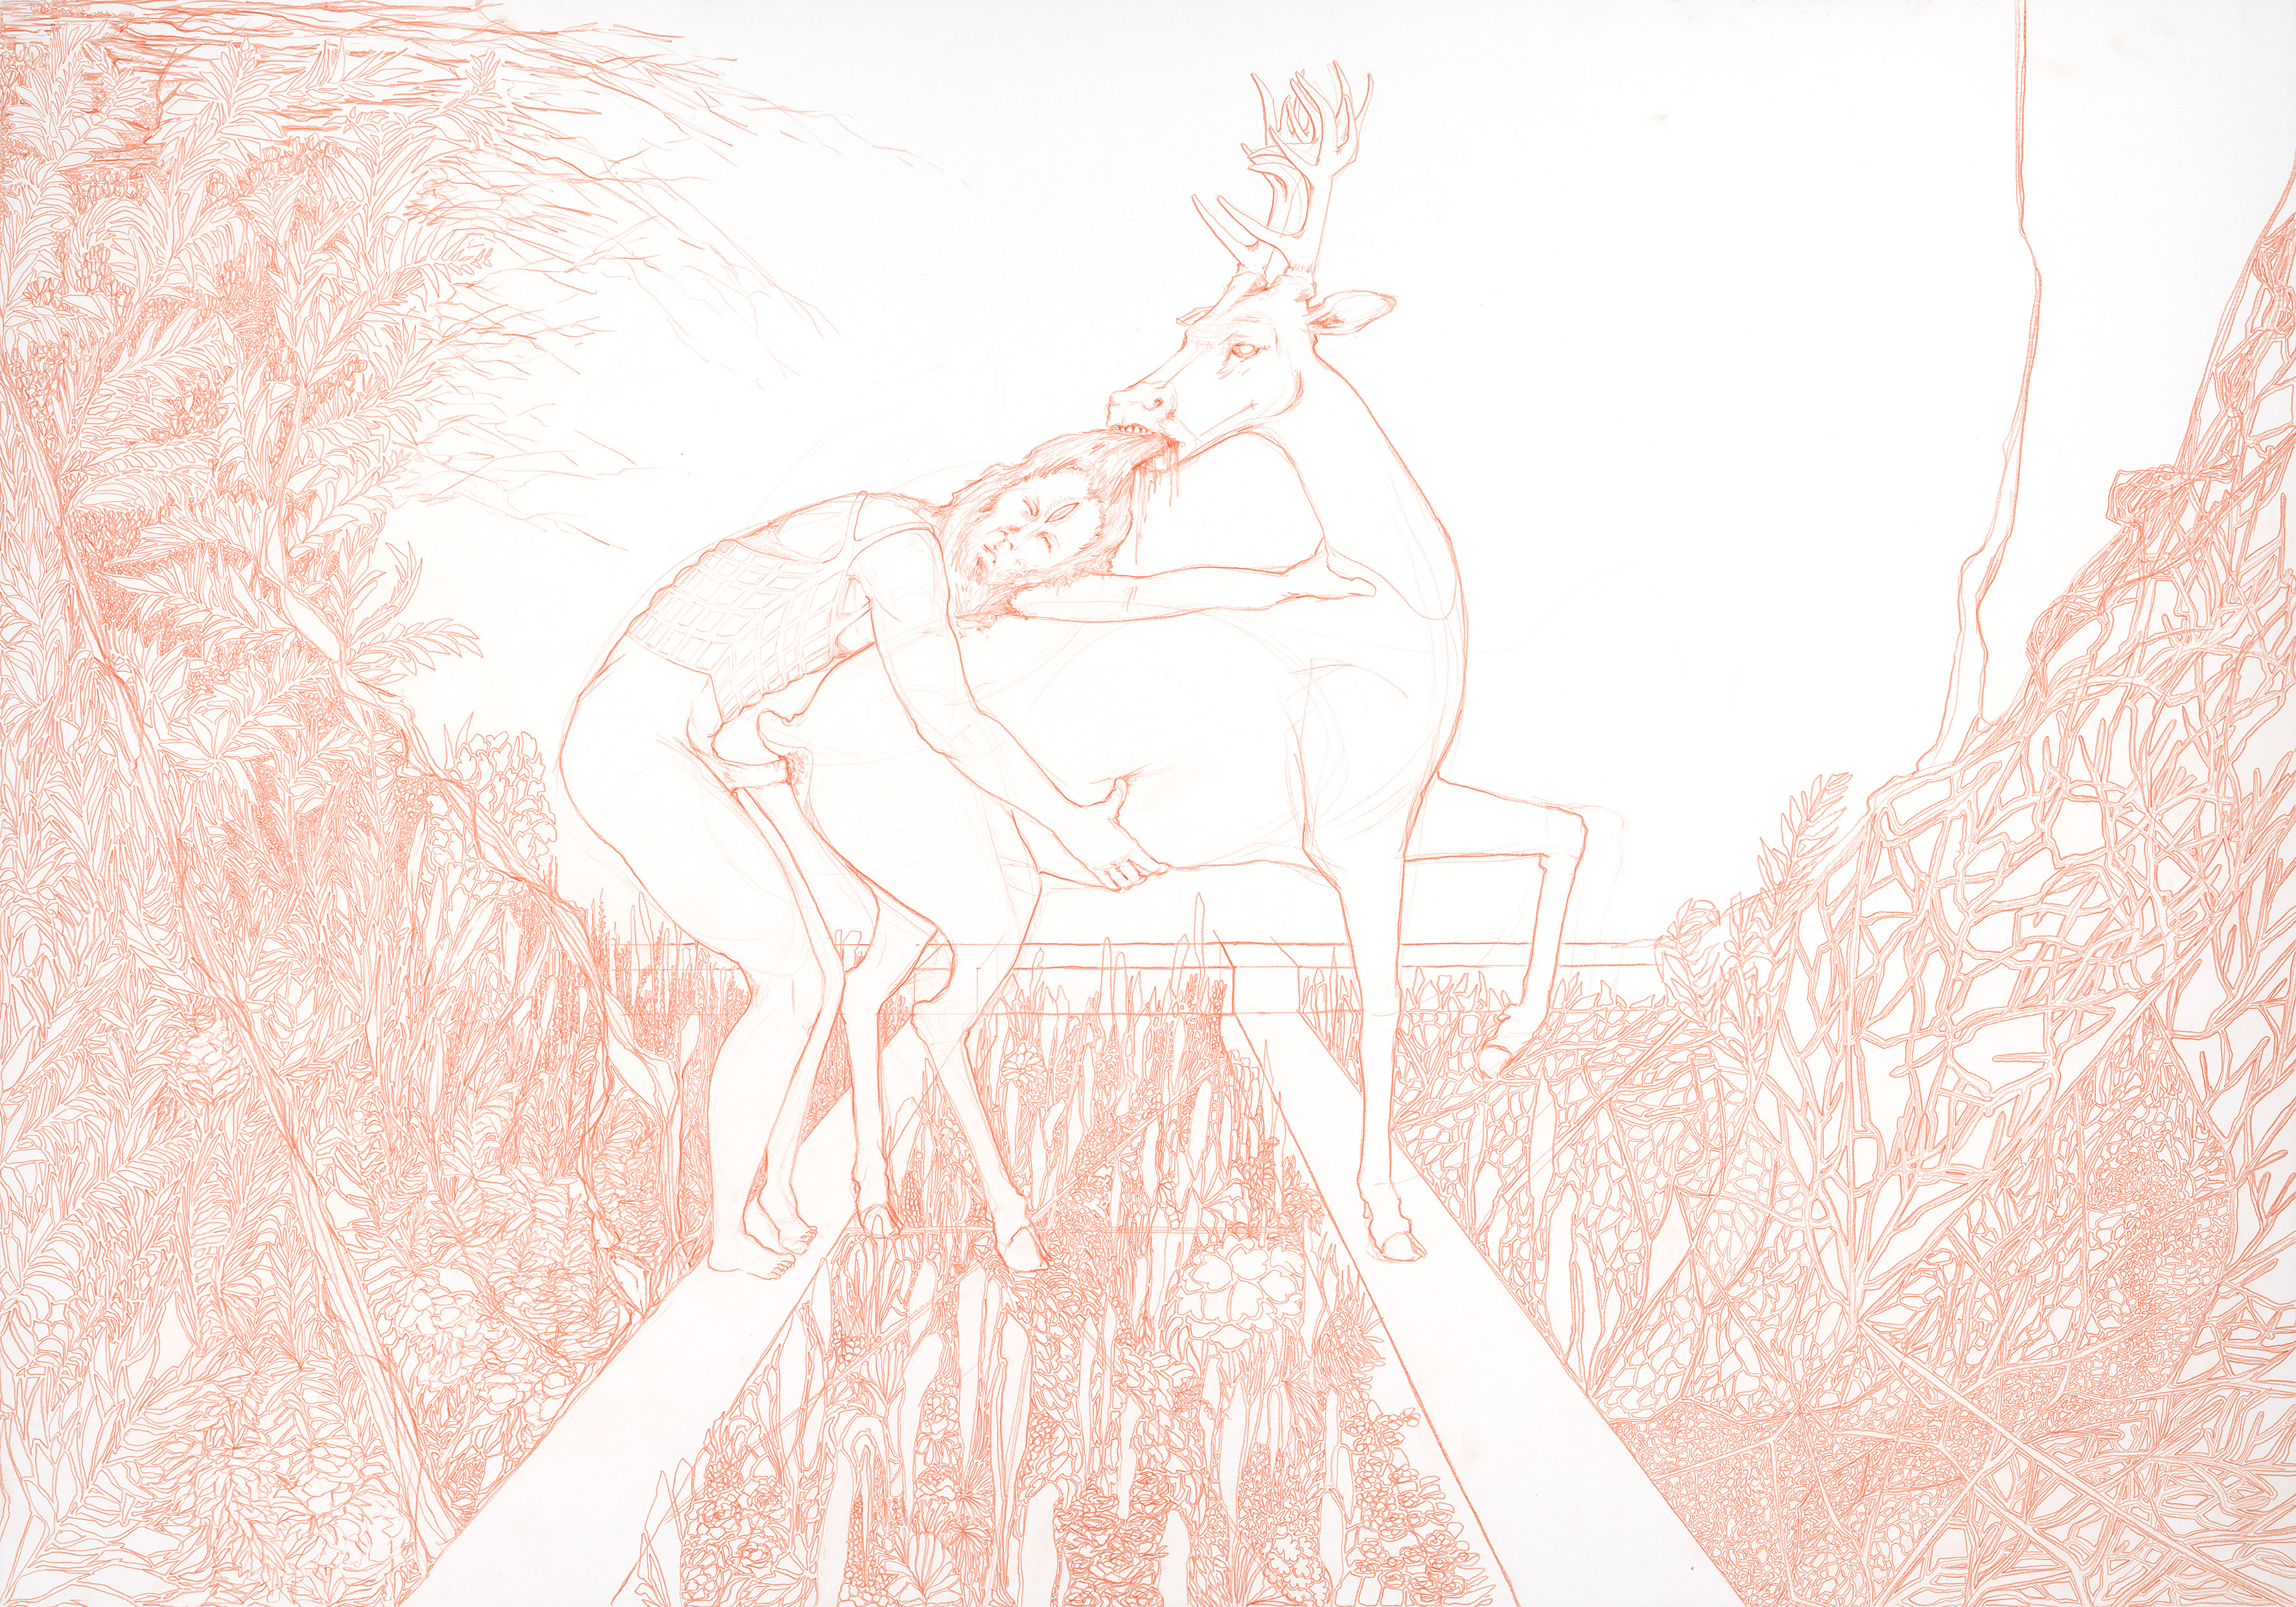 The Faun and the Deer